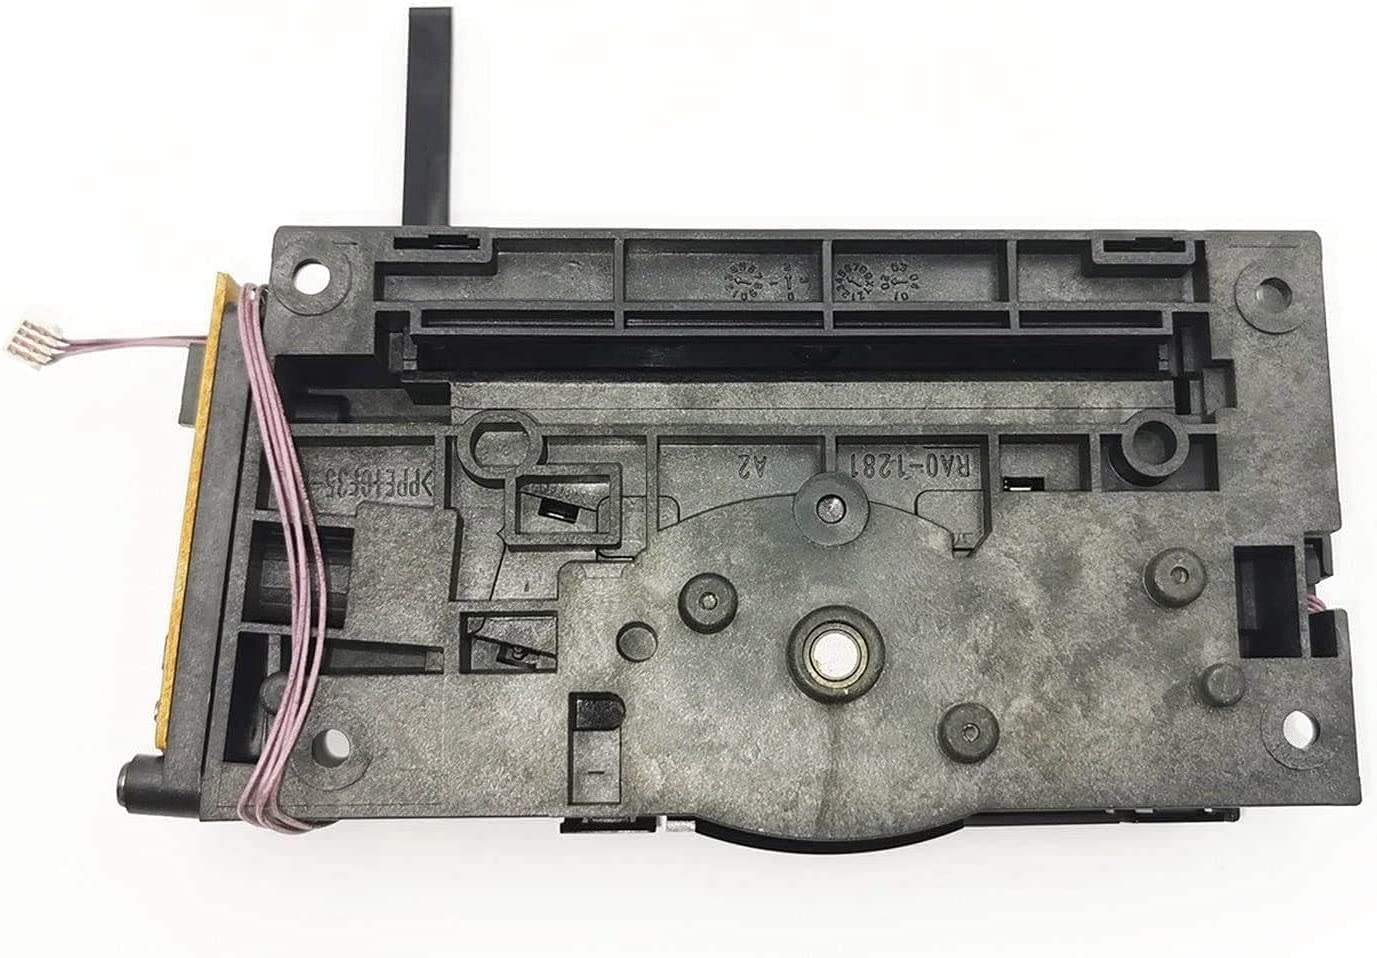 Youmine Durable Printer Parts RG9-1486 Head Ass'y Fit Compatible with HP Laserjet 1200 1220 3300 3320 3330 HP1200 HP3300 HP3330 Scanner Assembly RG0-1041